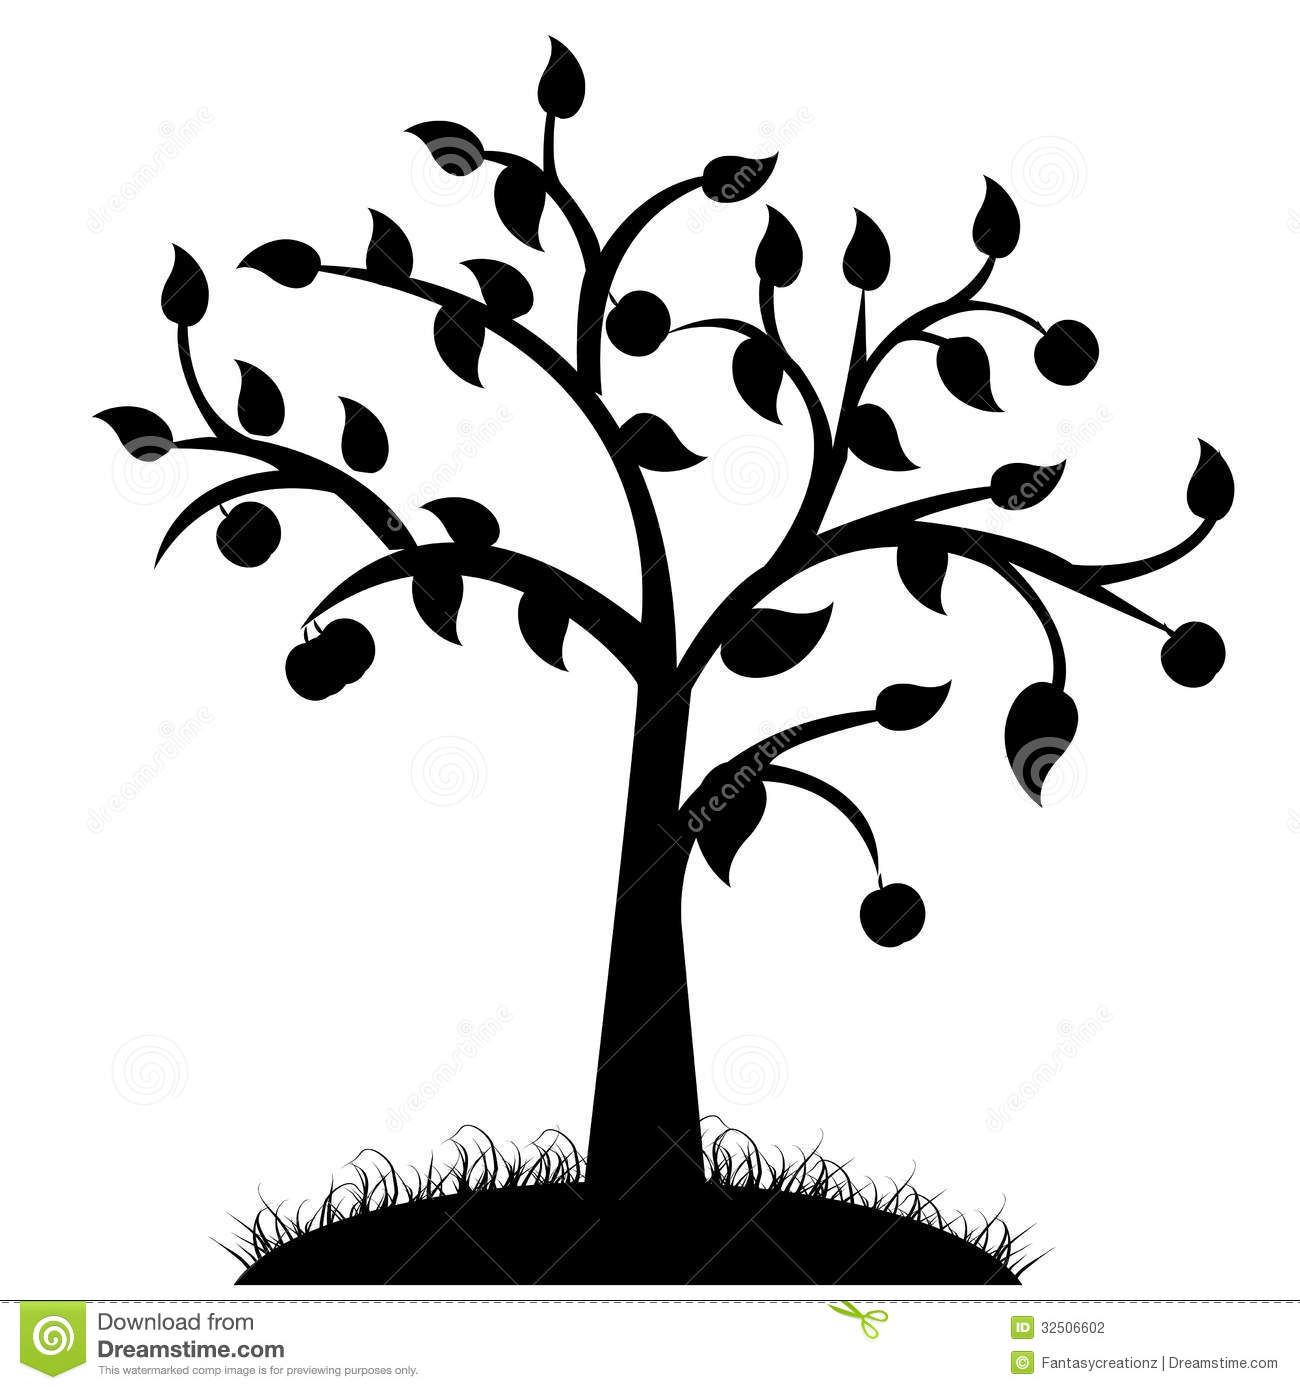 Simple Black Tree Silhouette | www.pixshark.com - Images ...